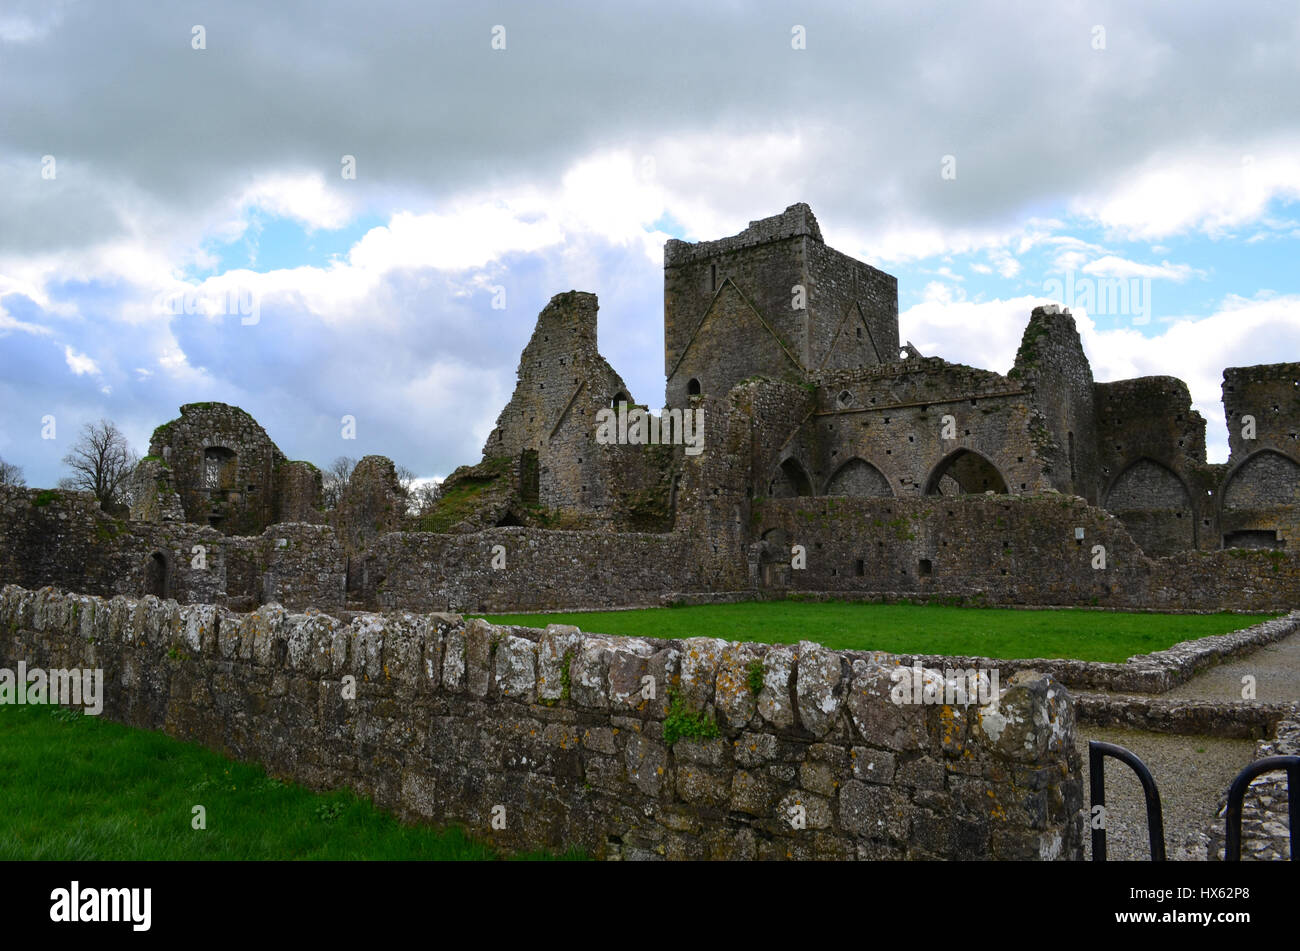 Old Benedictine abbey convereted to a Cistercian monastery in beside the Rock of Cashel. - Stock Image